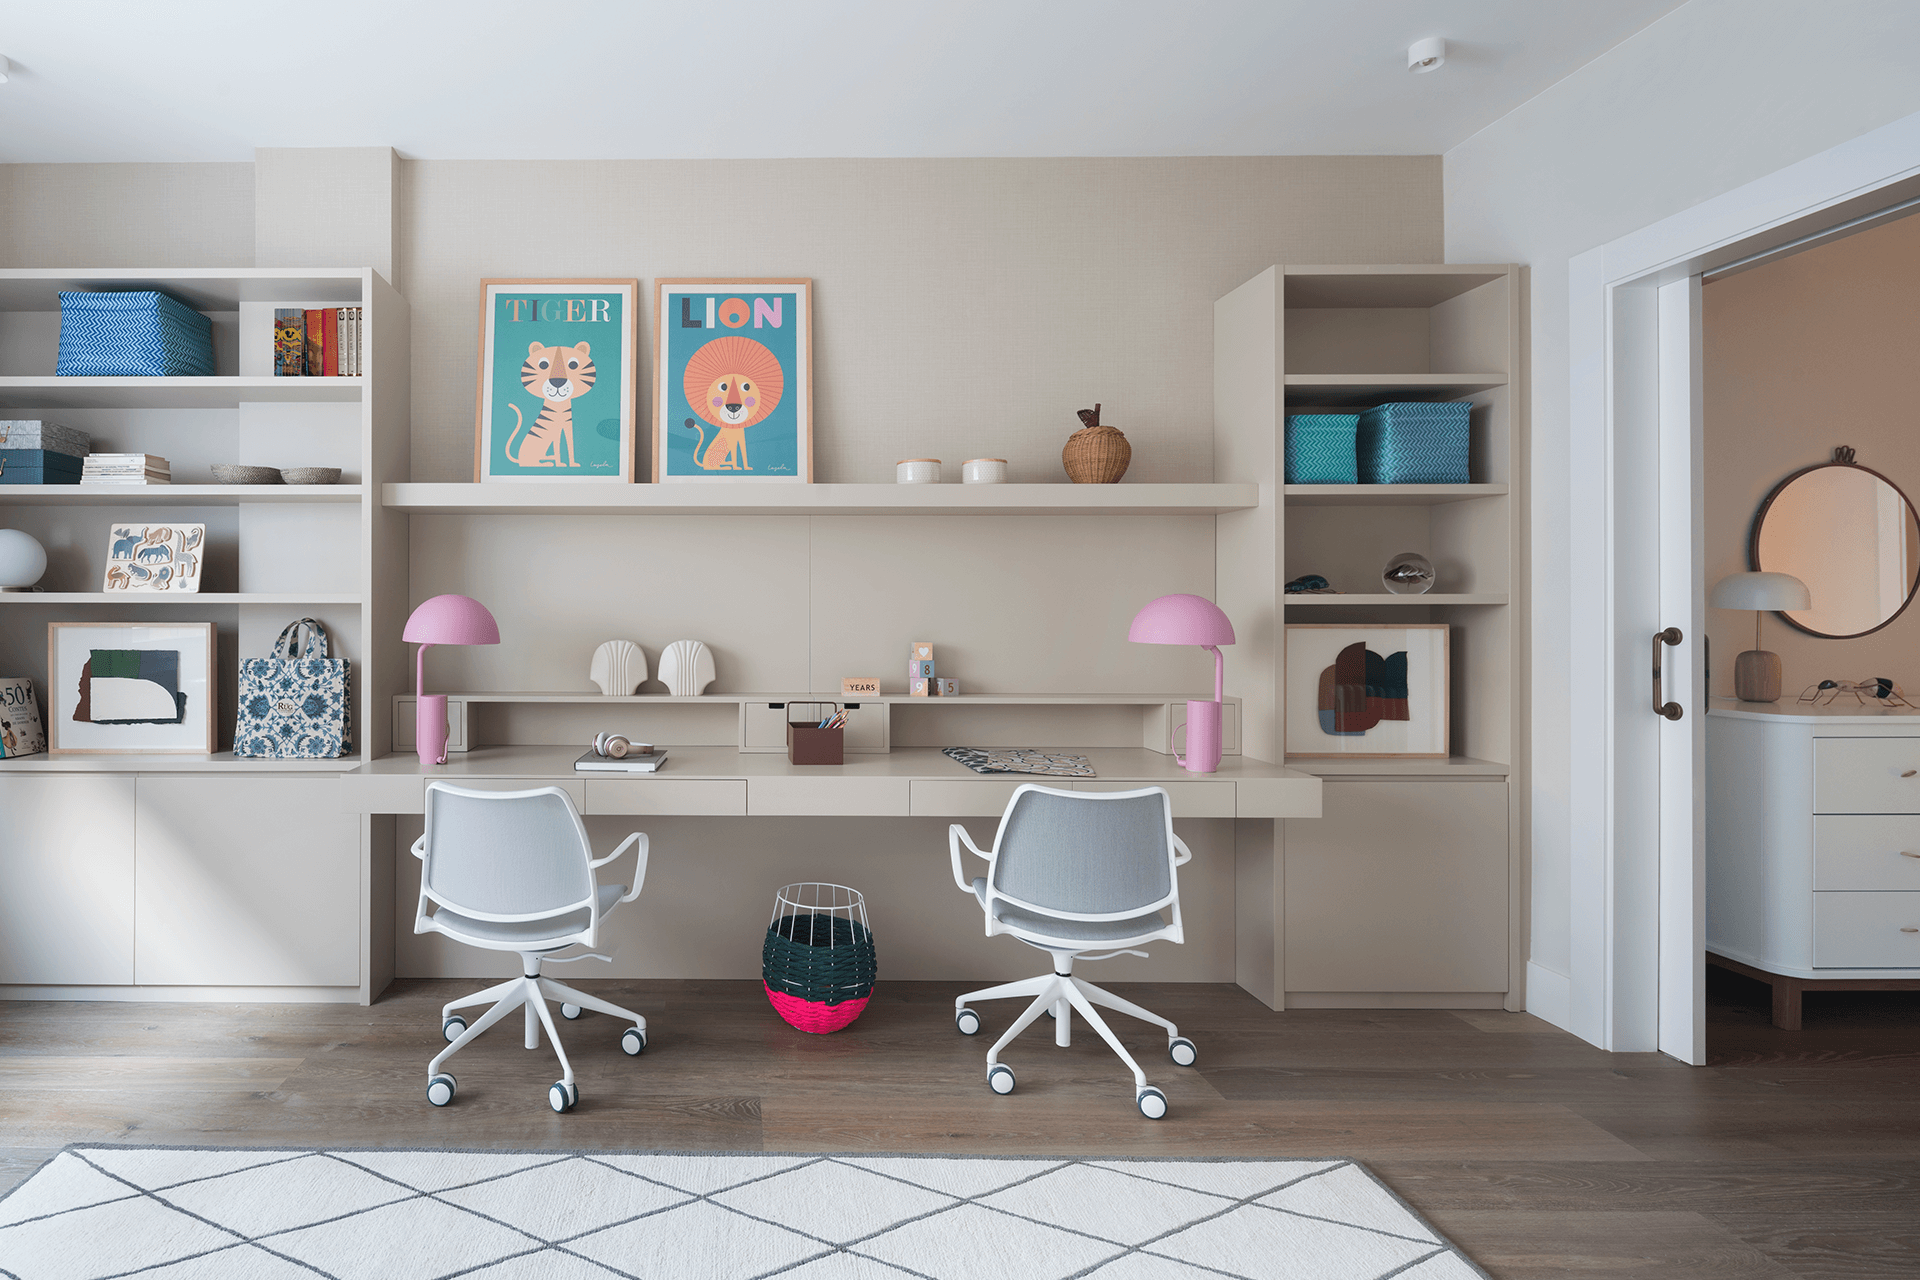 Interiorista Decorador Barcelona | The Room Studio